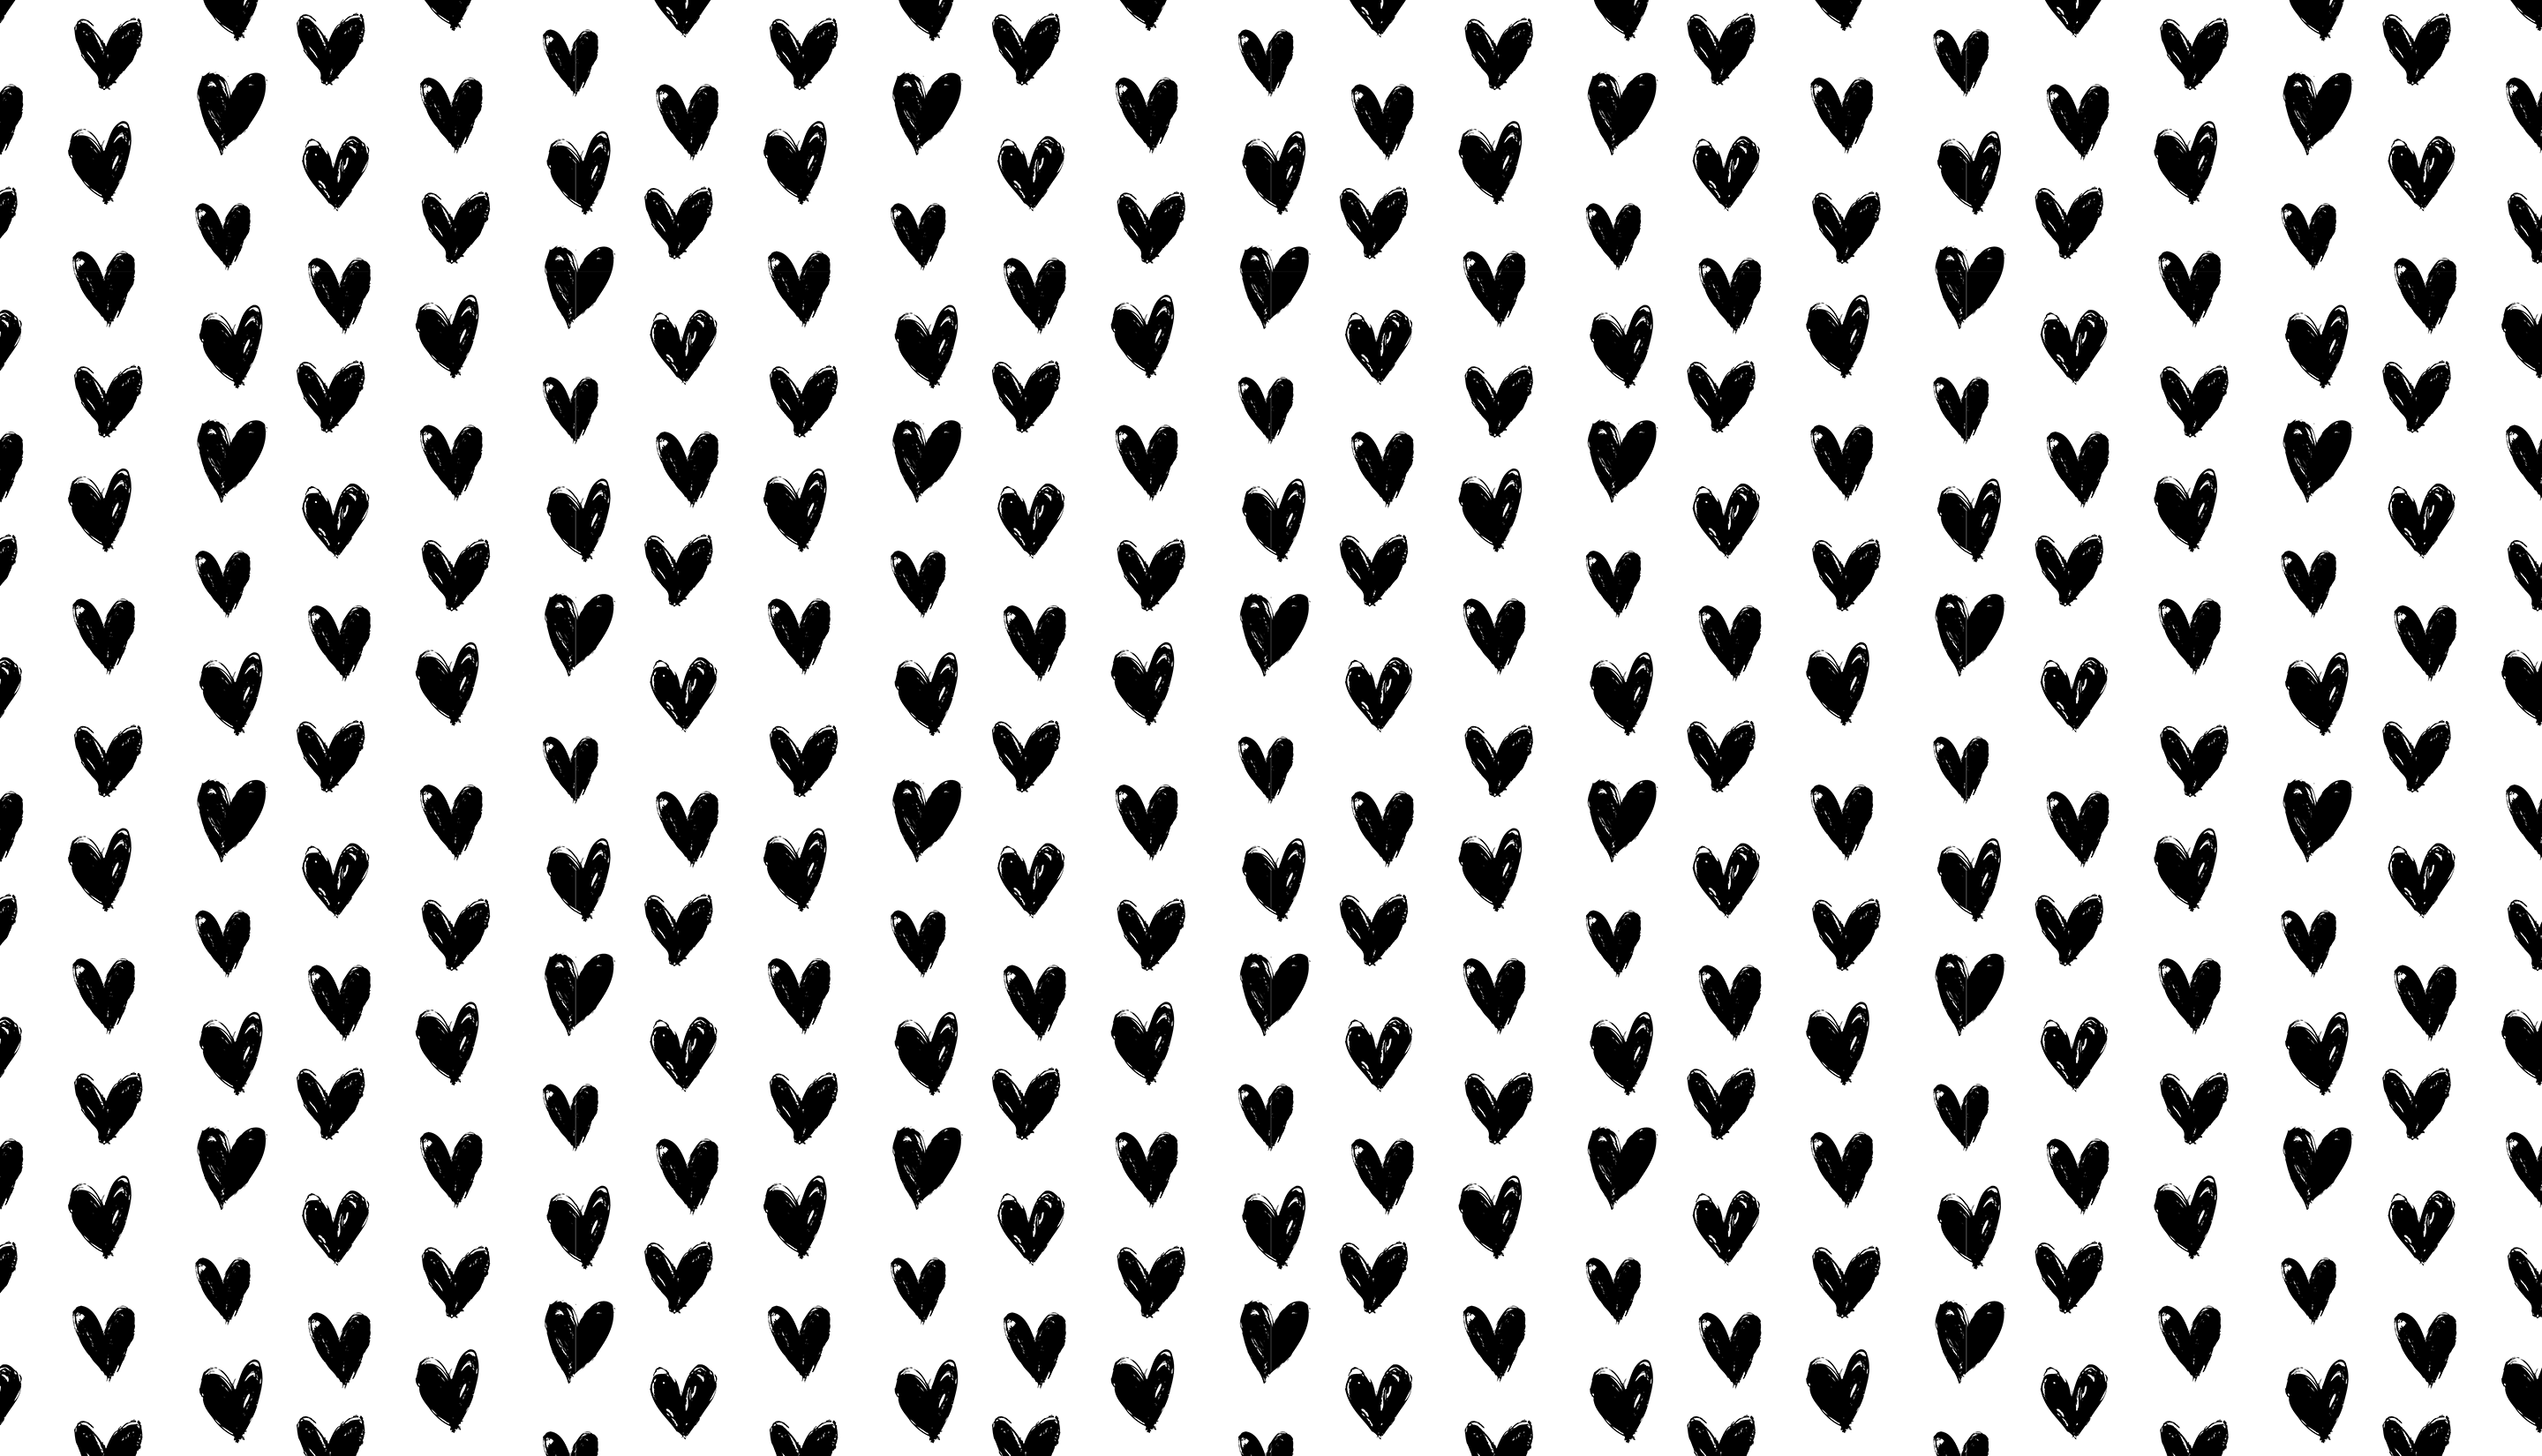 Pin By Limelife Planners Customized On Free Desktop Wallpapers White Pattern Background Desktop Wallpapers Backgrounds Black And White Heart